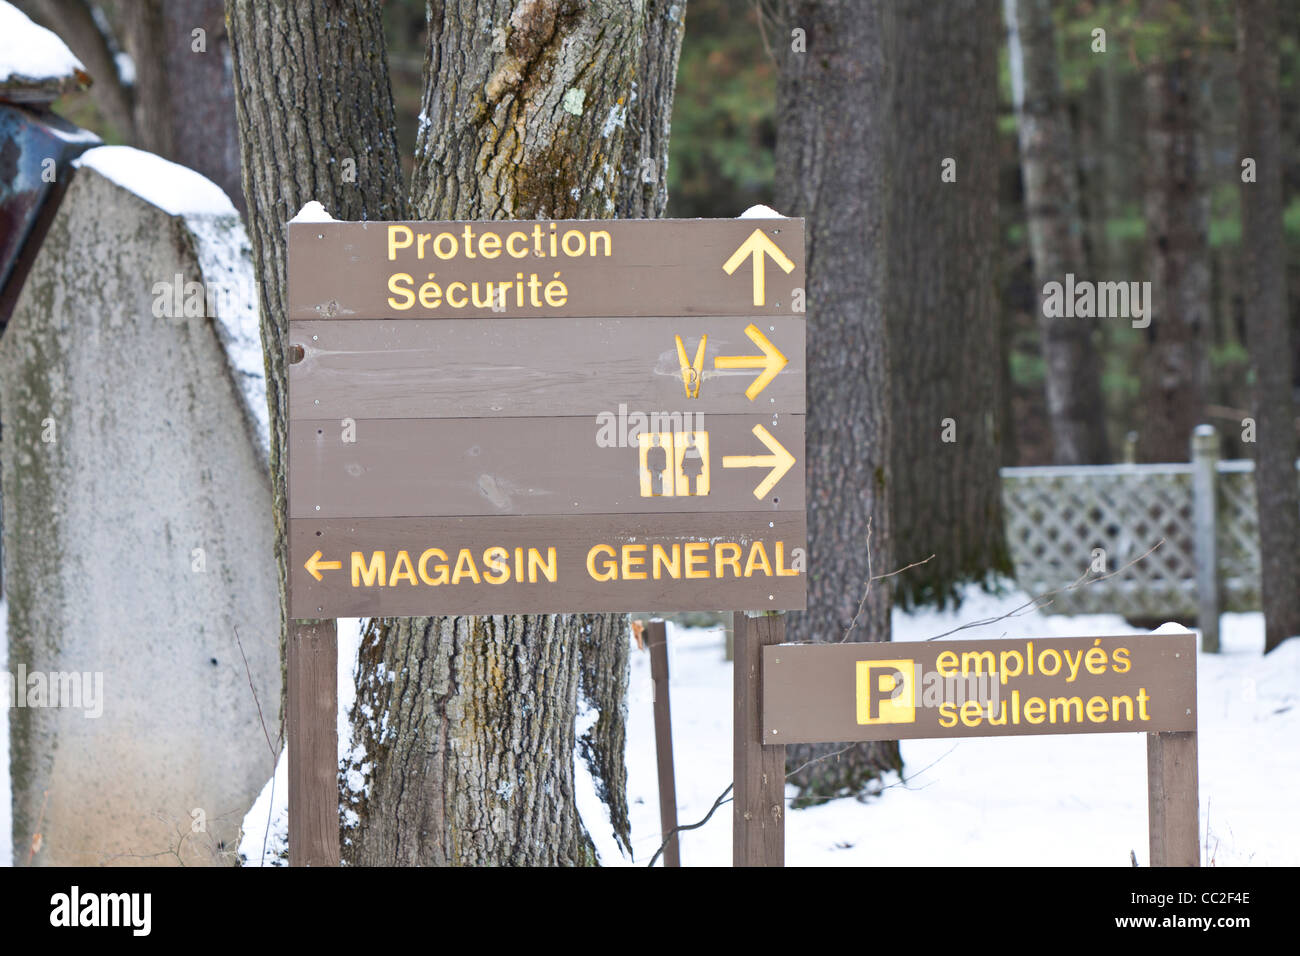 Guidance sign board in Oka, Quebec, Canada. - Stock Image